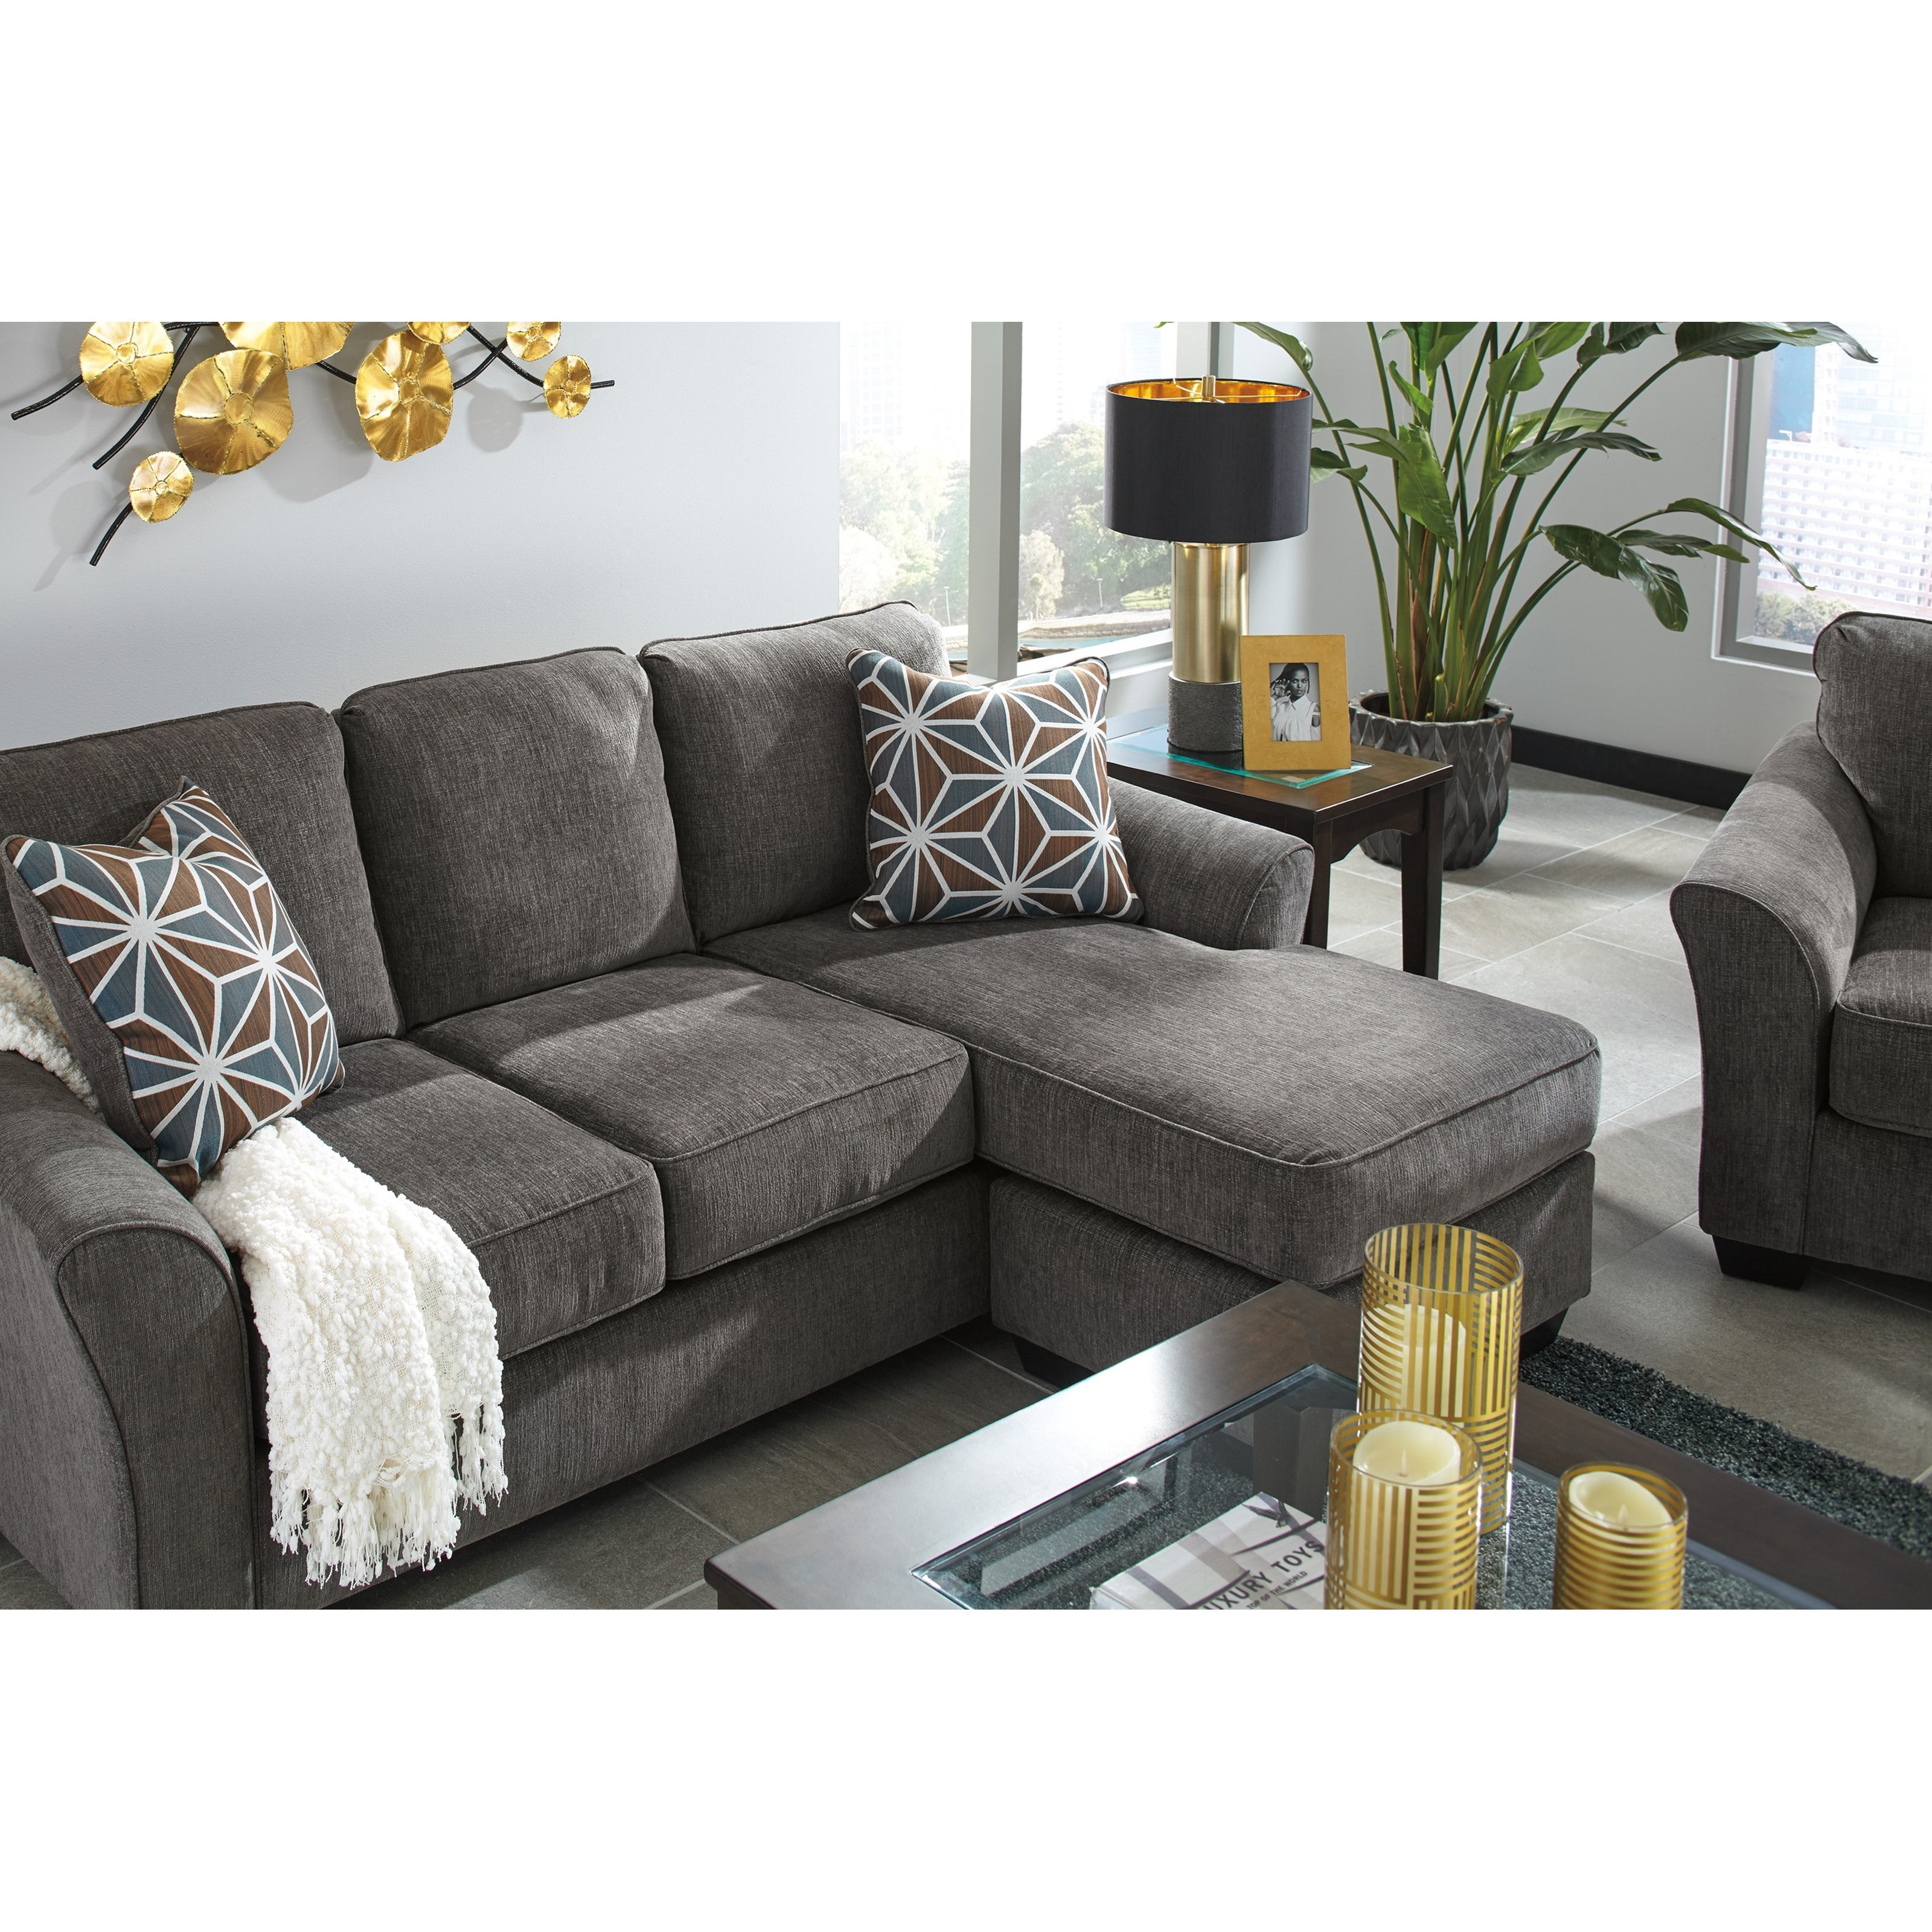 Benchcraft Brise Casual Contemporary Queen Sofa Chaise